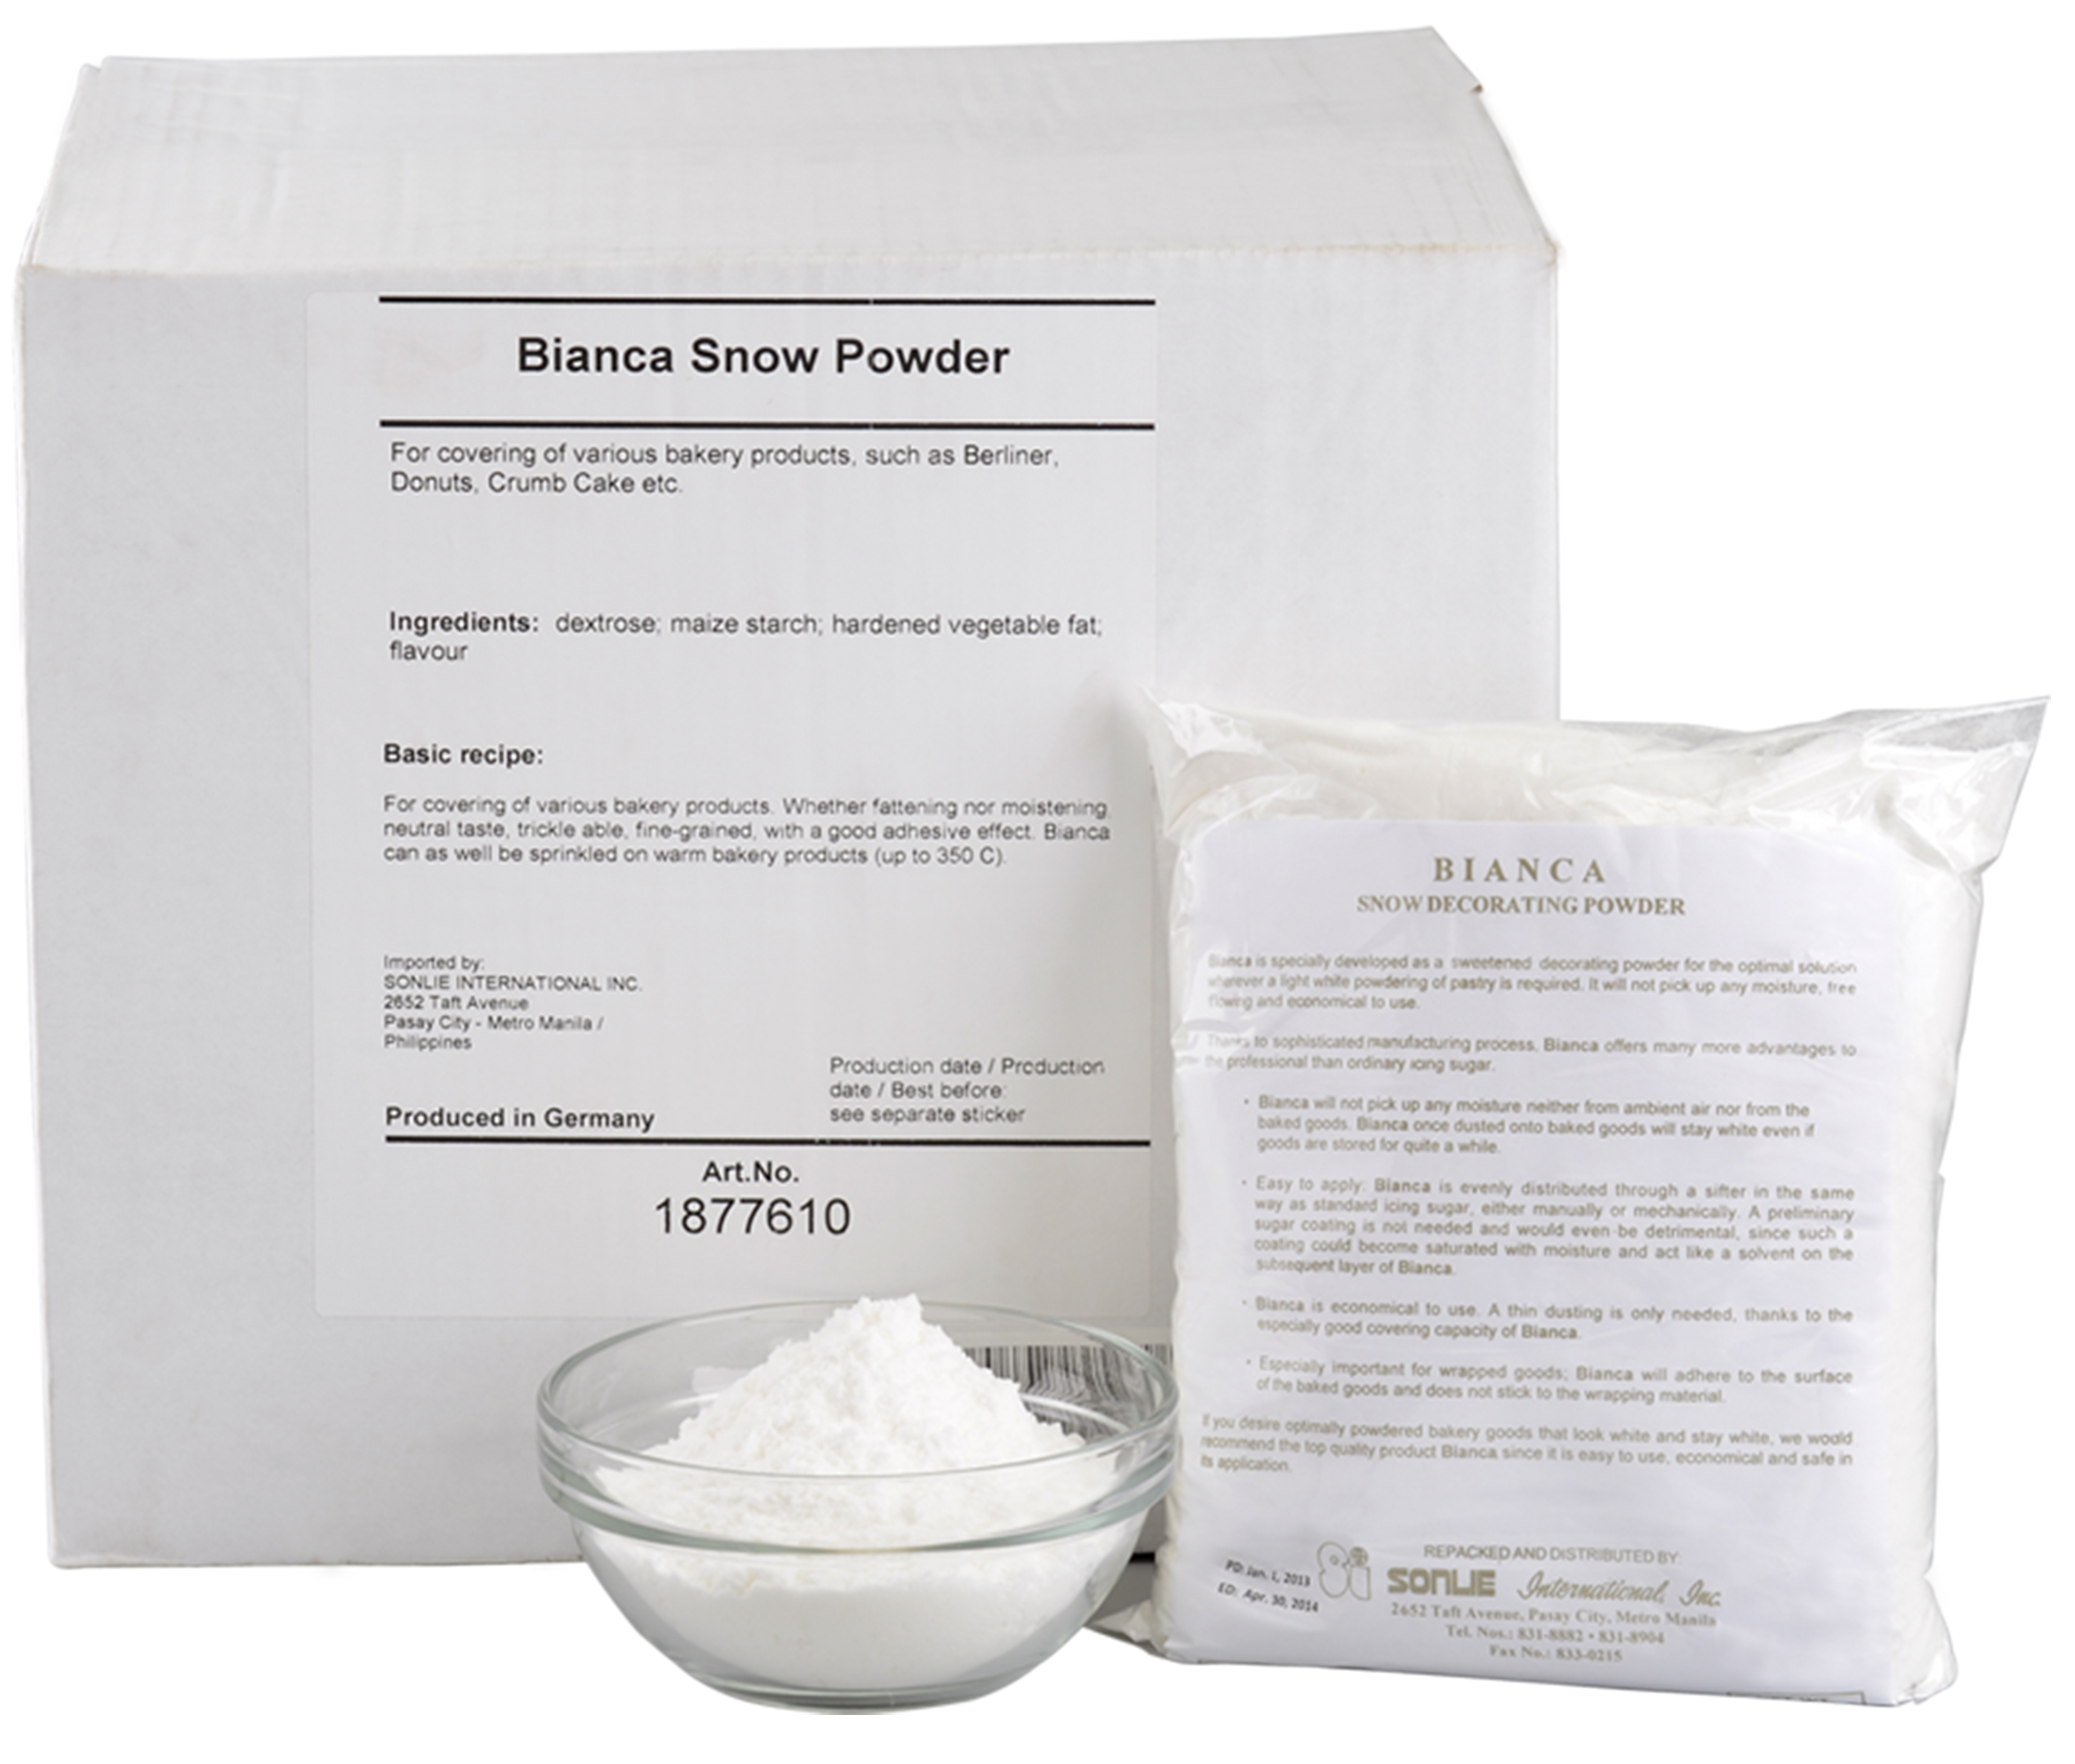 Bianca Snow Powder Image